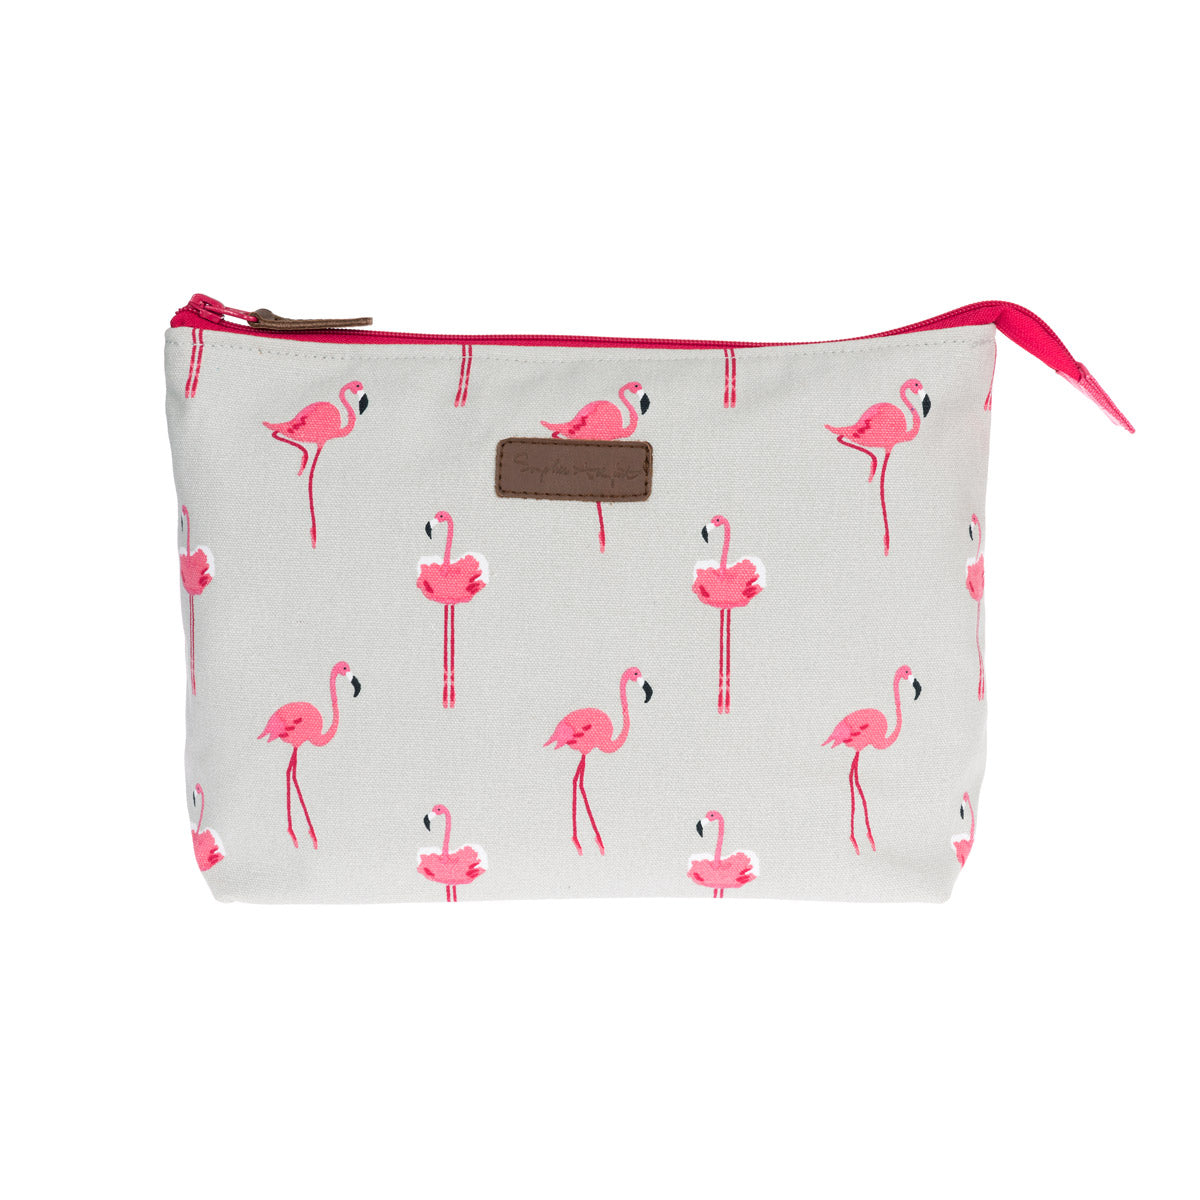 Flamingos Canvas Wash Bag - Large